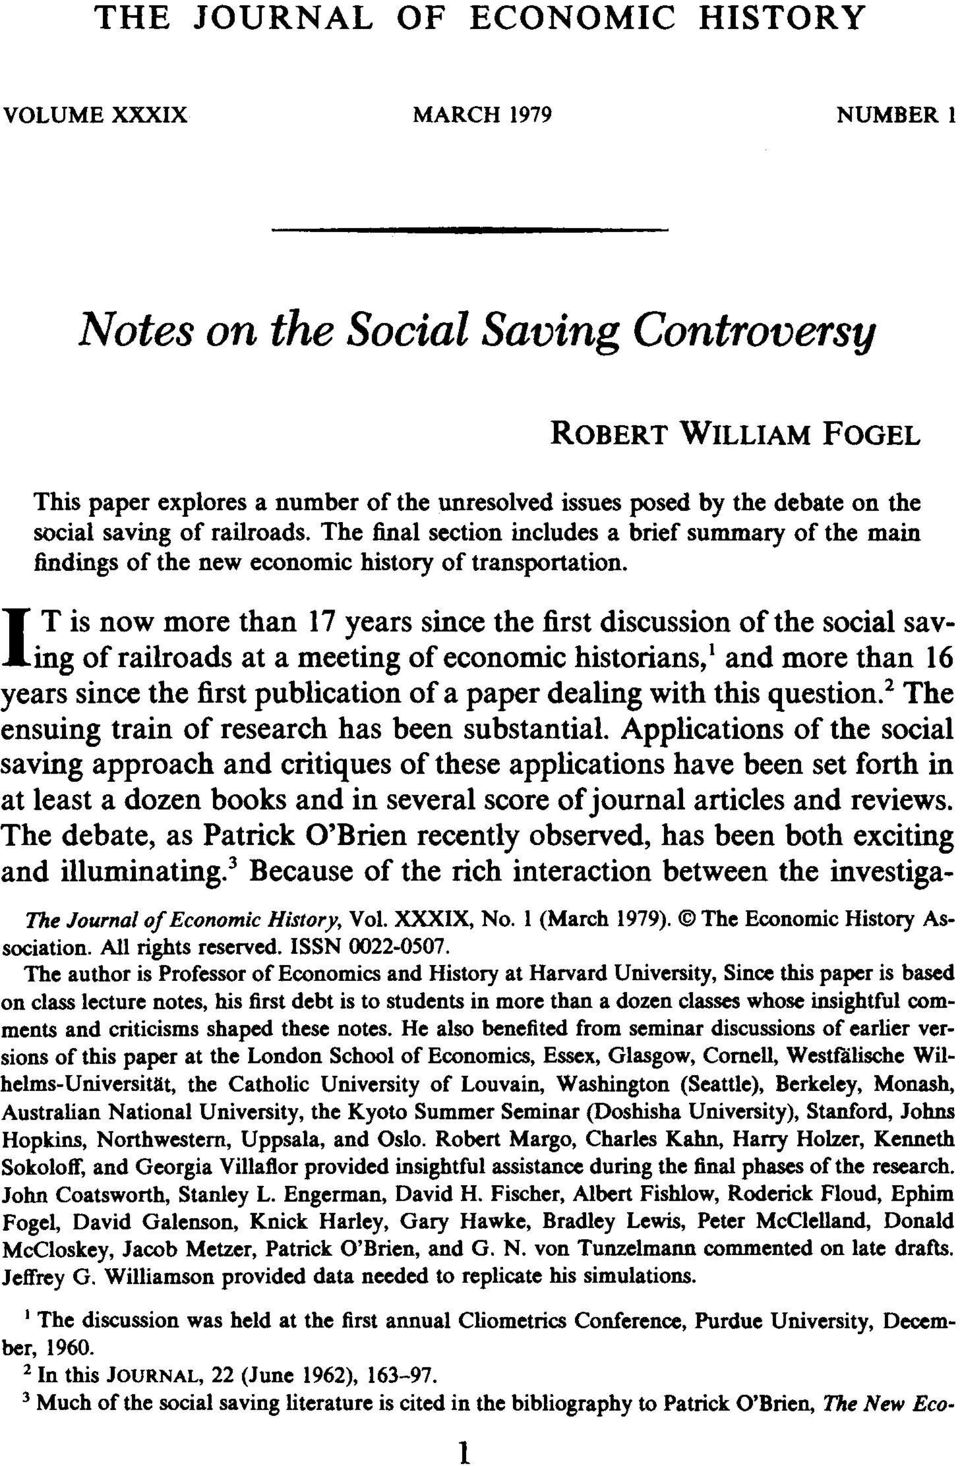 T is now more than 17 years since the first discussion of the social saving of railroads at a meeting of economic historians,' and more than 16 years since the first publication of a paper dealing